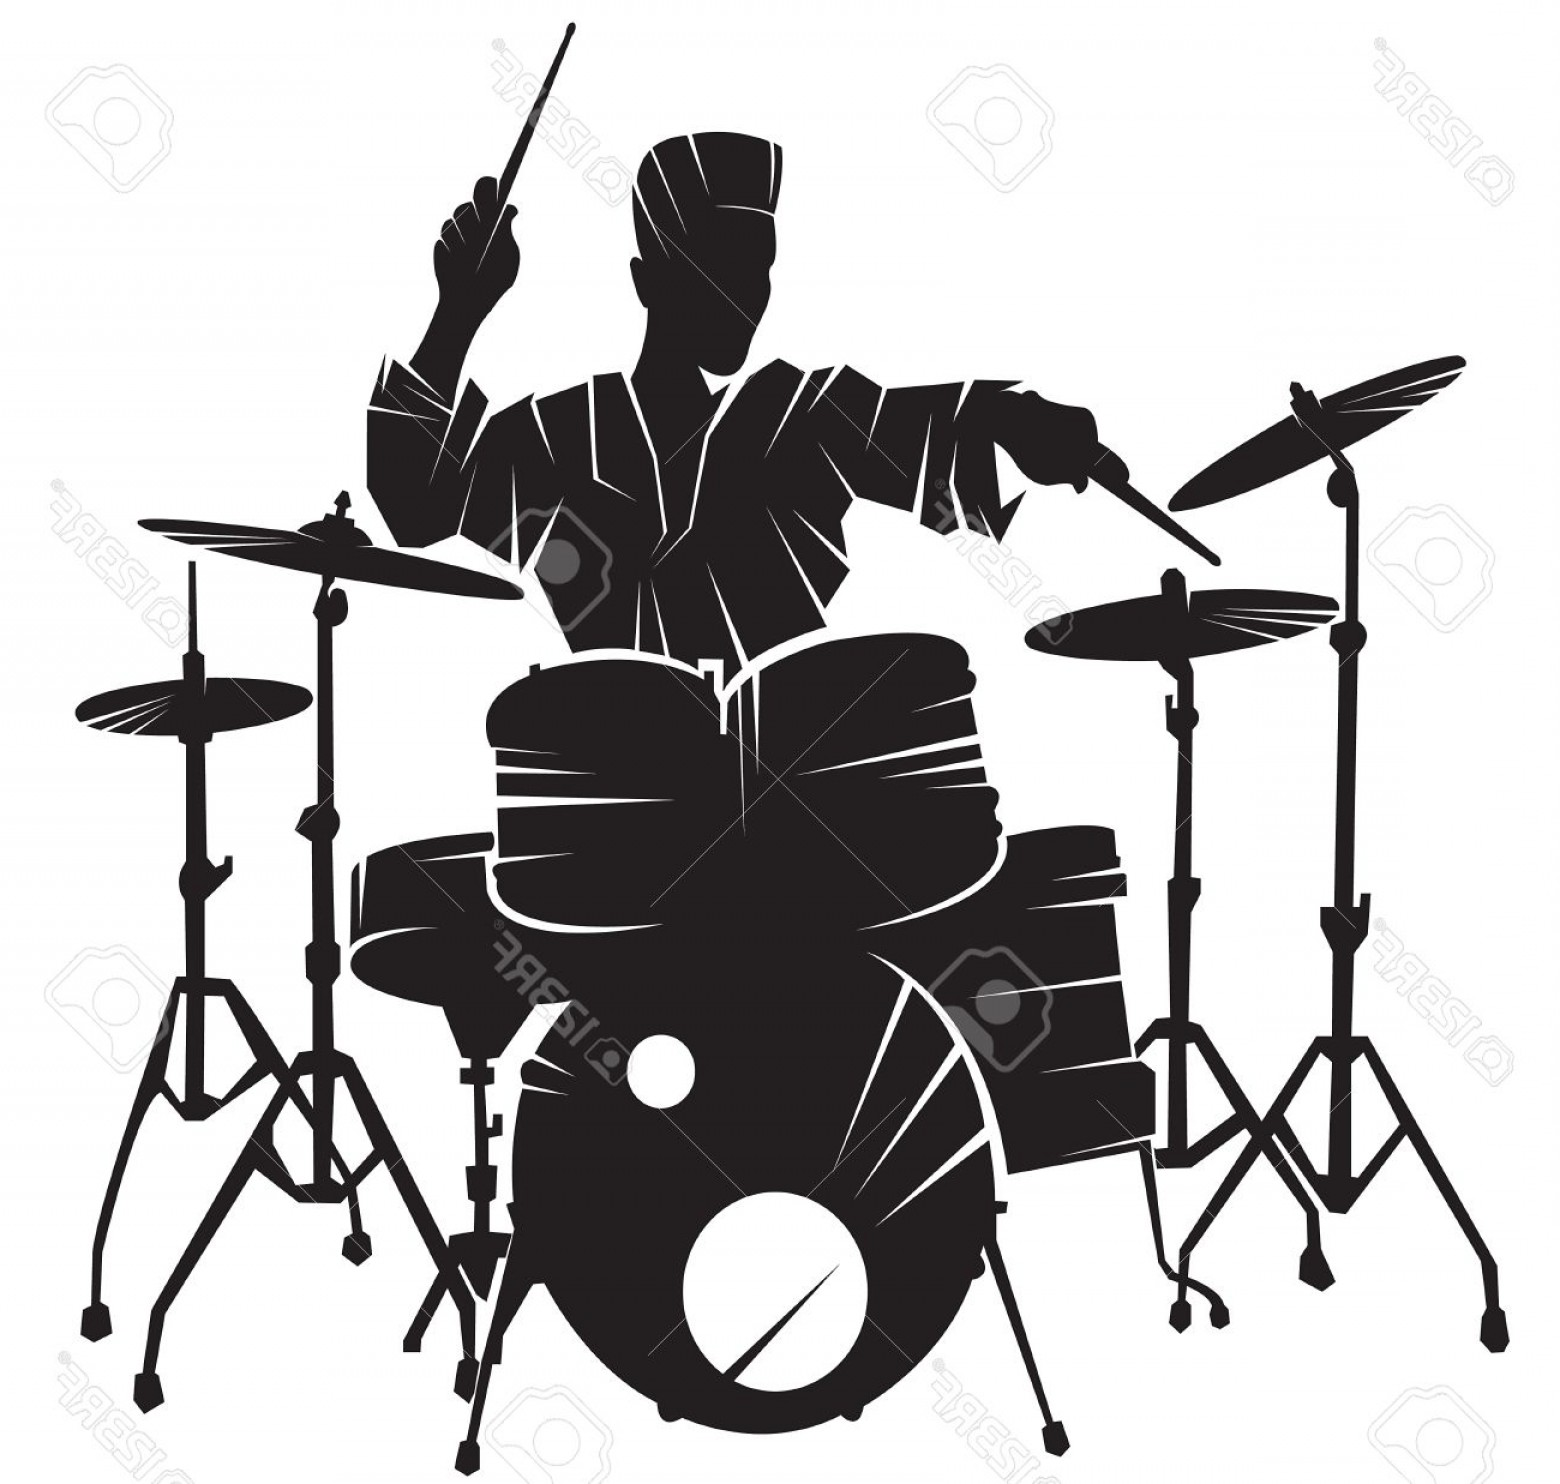 Musician Person Vector: Photostock Vector The Musician Playing Drum Setting Vector Silhouette